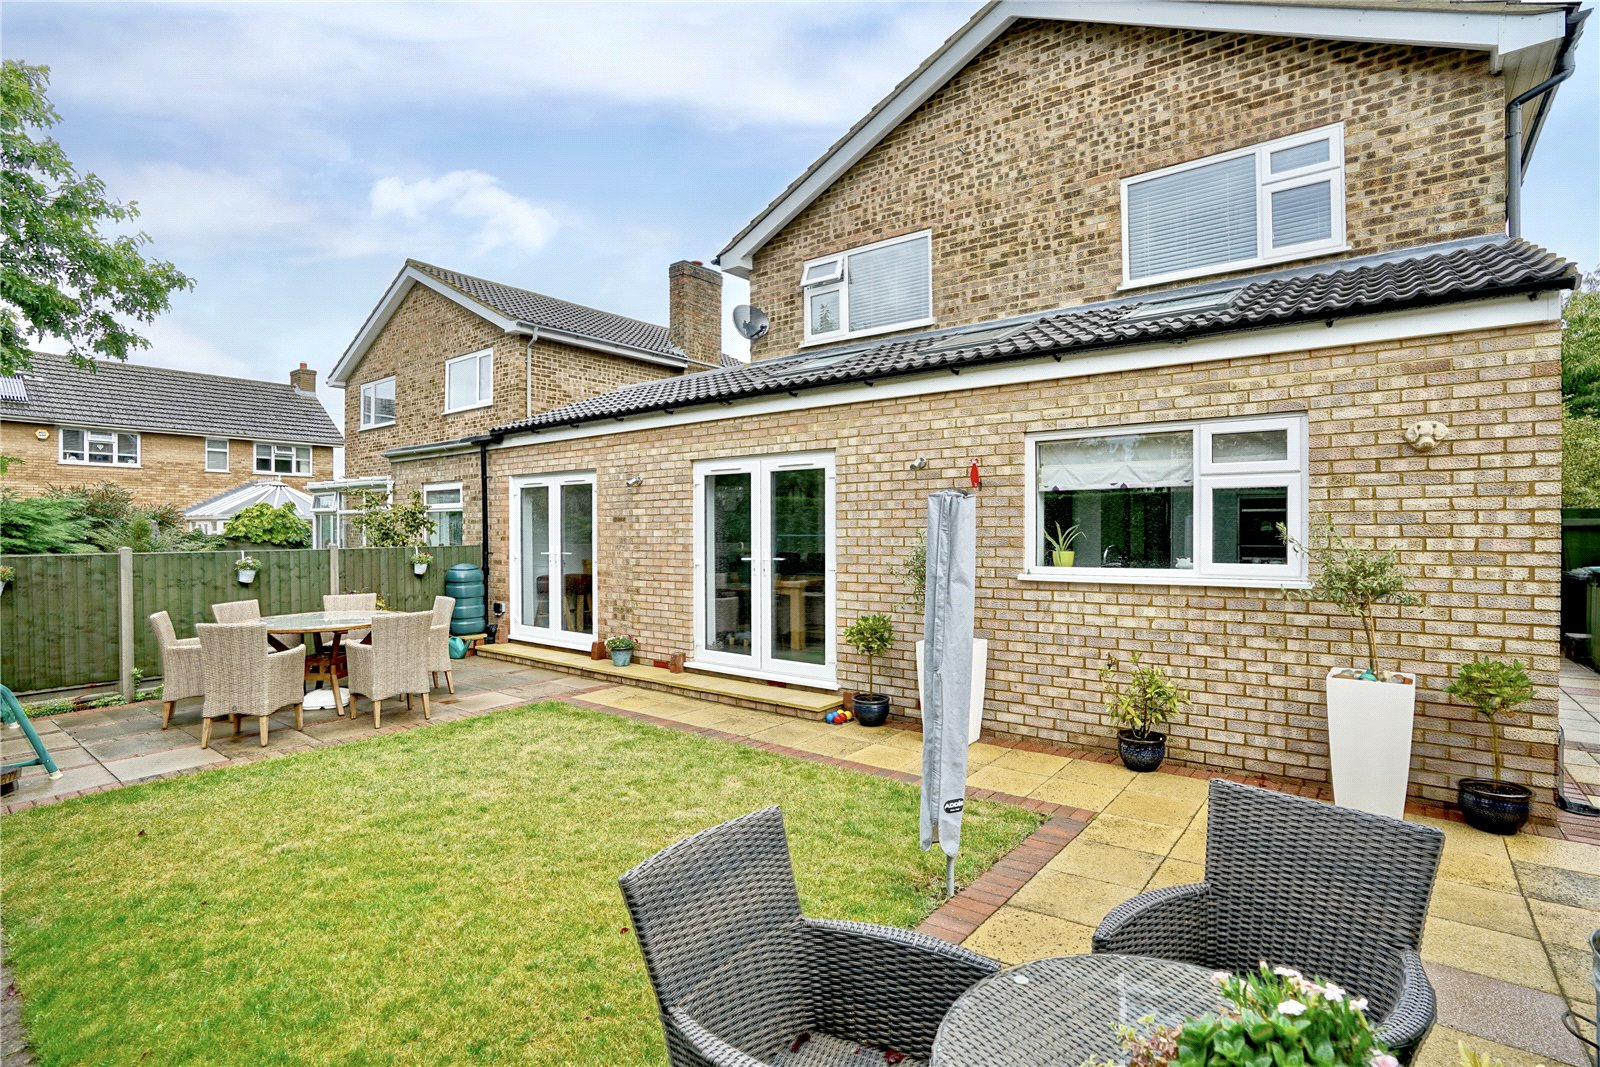 3 bed house for sale in Windsor Way, Sandy  - Property Image 7